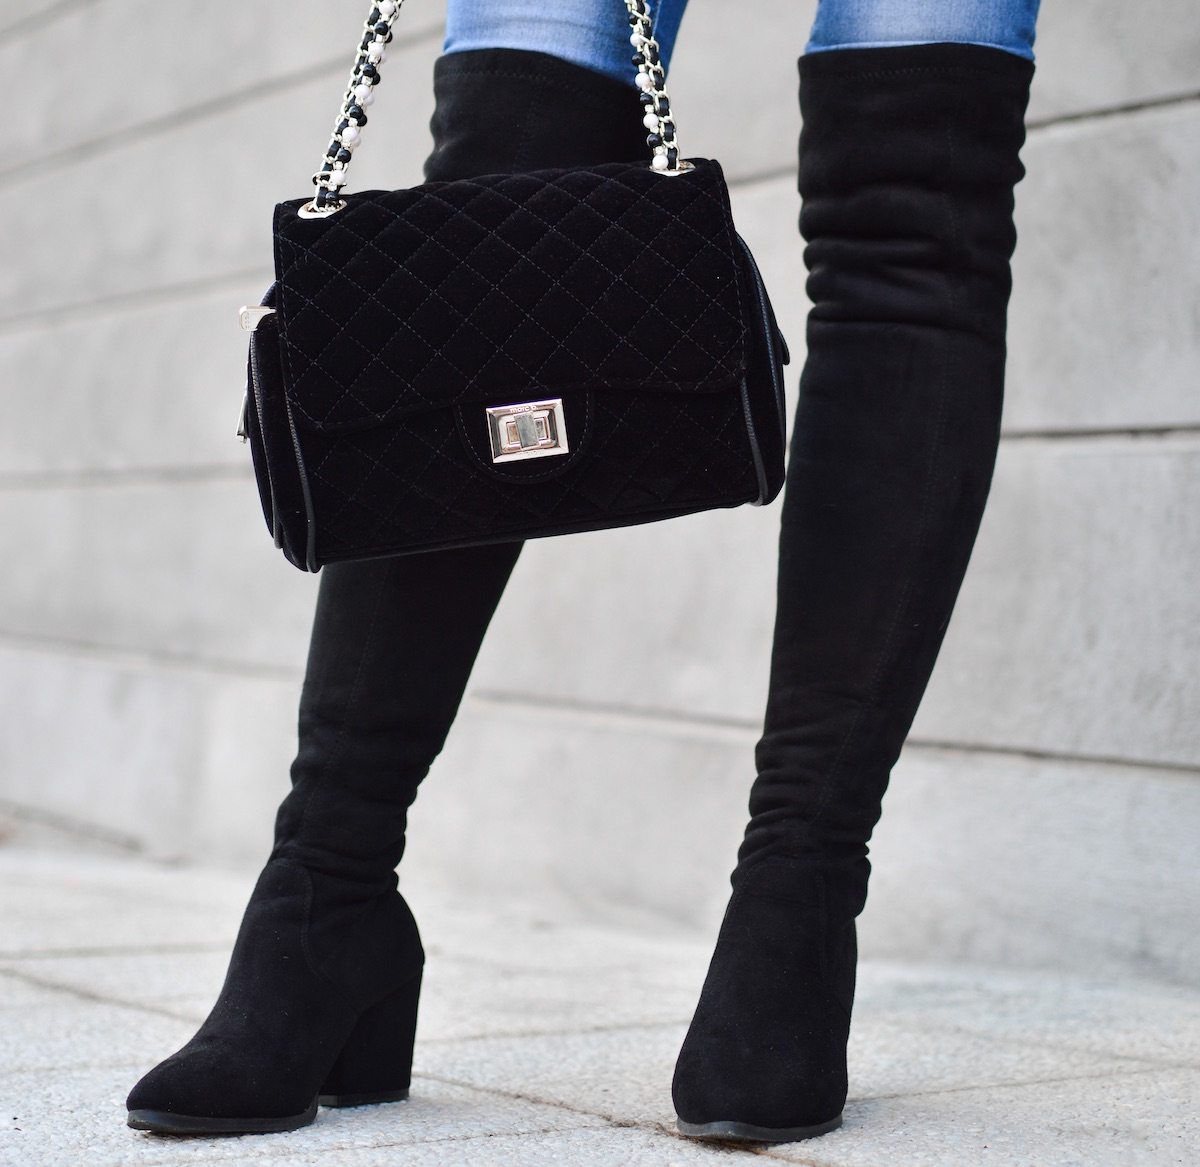 matching shoes and bags